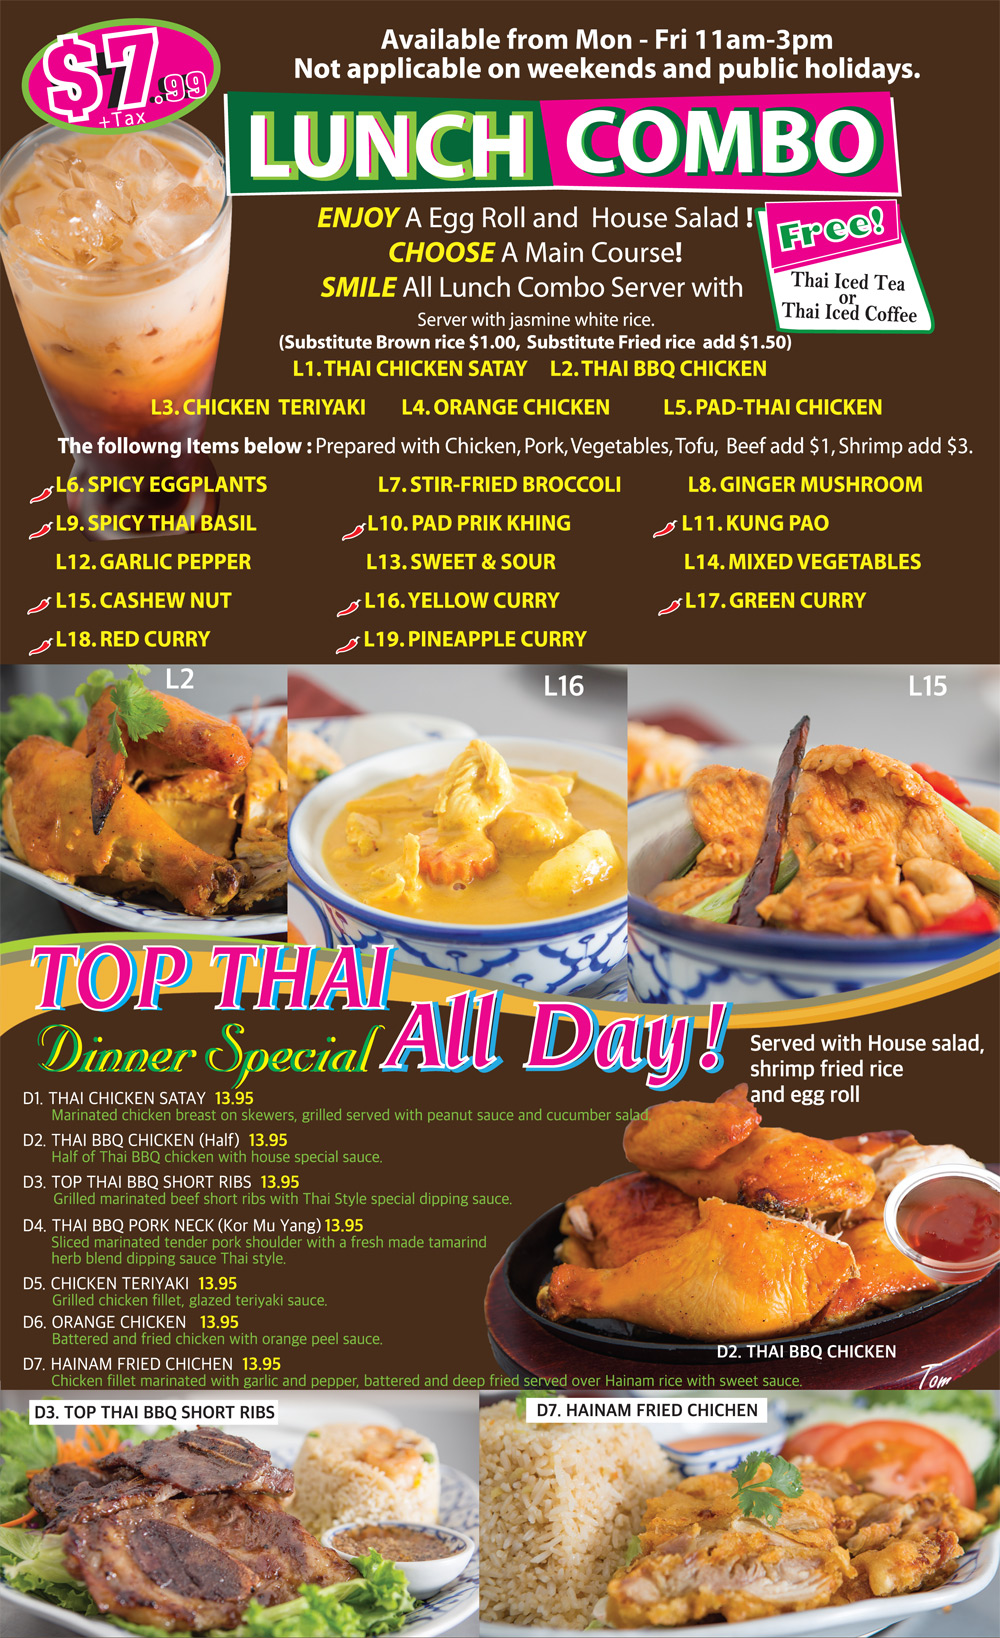 Menu top thai cuisine top thai cuisine is dedicated to authentic thai cuisine using traditional recipes and freshest ingredients forumfinder Choice Image